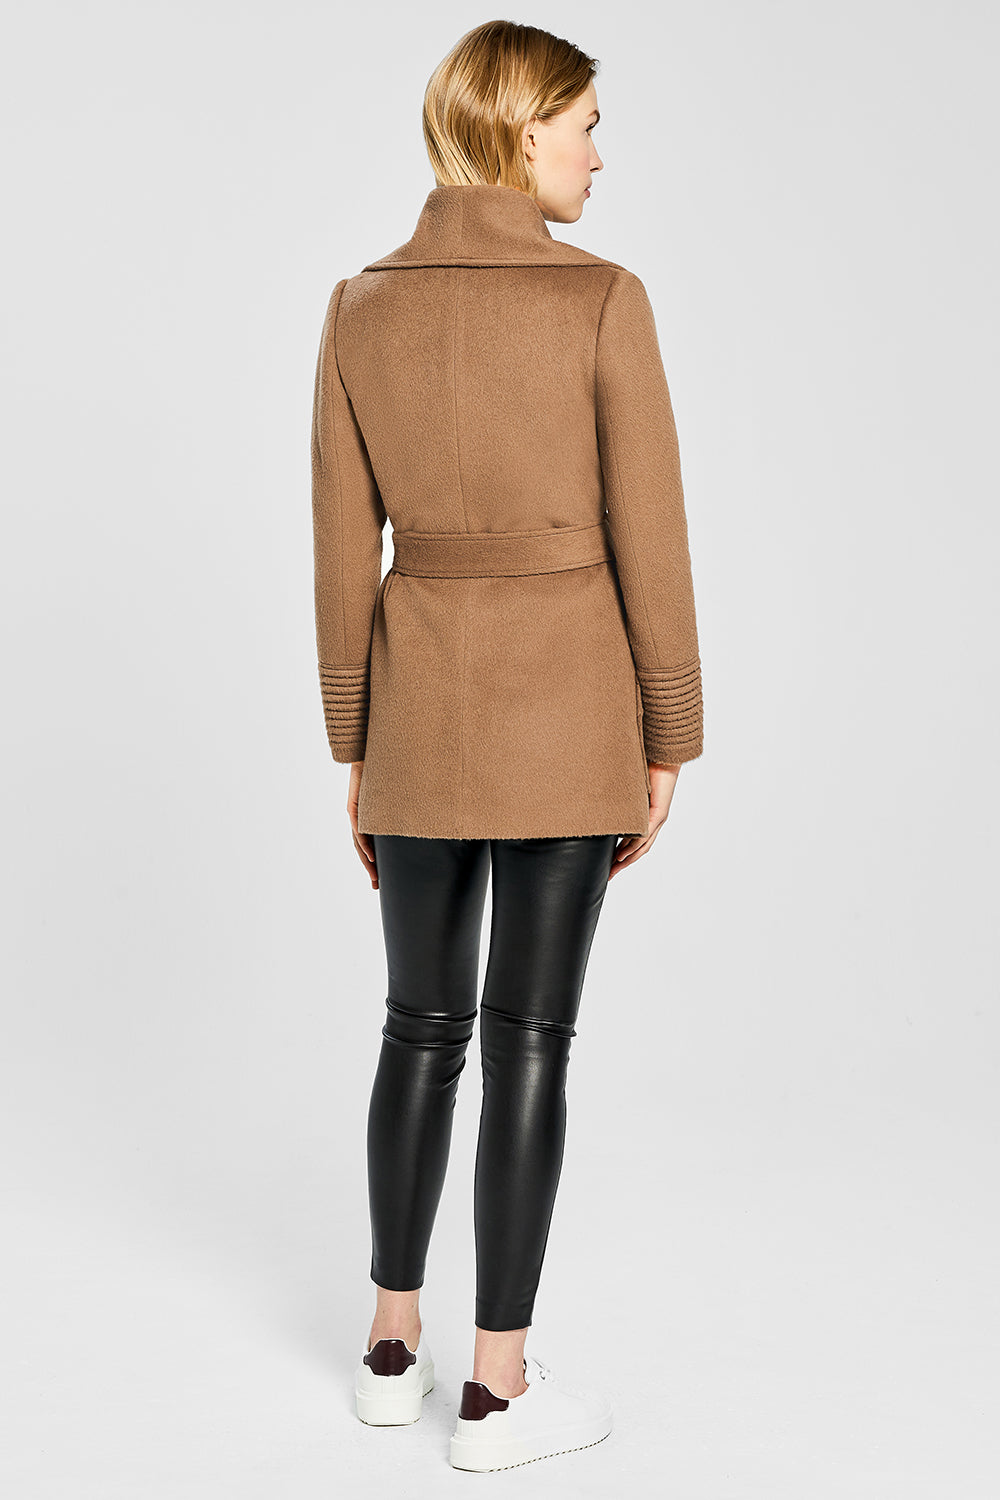 Sentaler Cropped Wide Collar Wrap Coat featured in Baby Alpaca and available in Dark Camel. Seen from back.